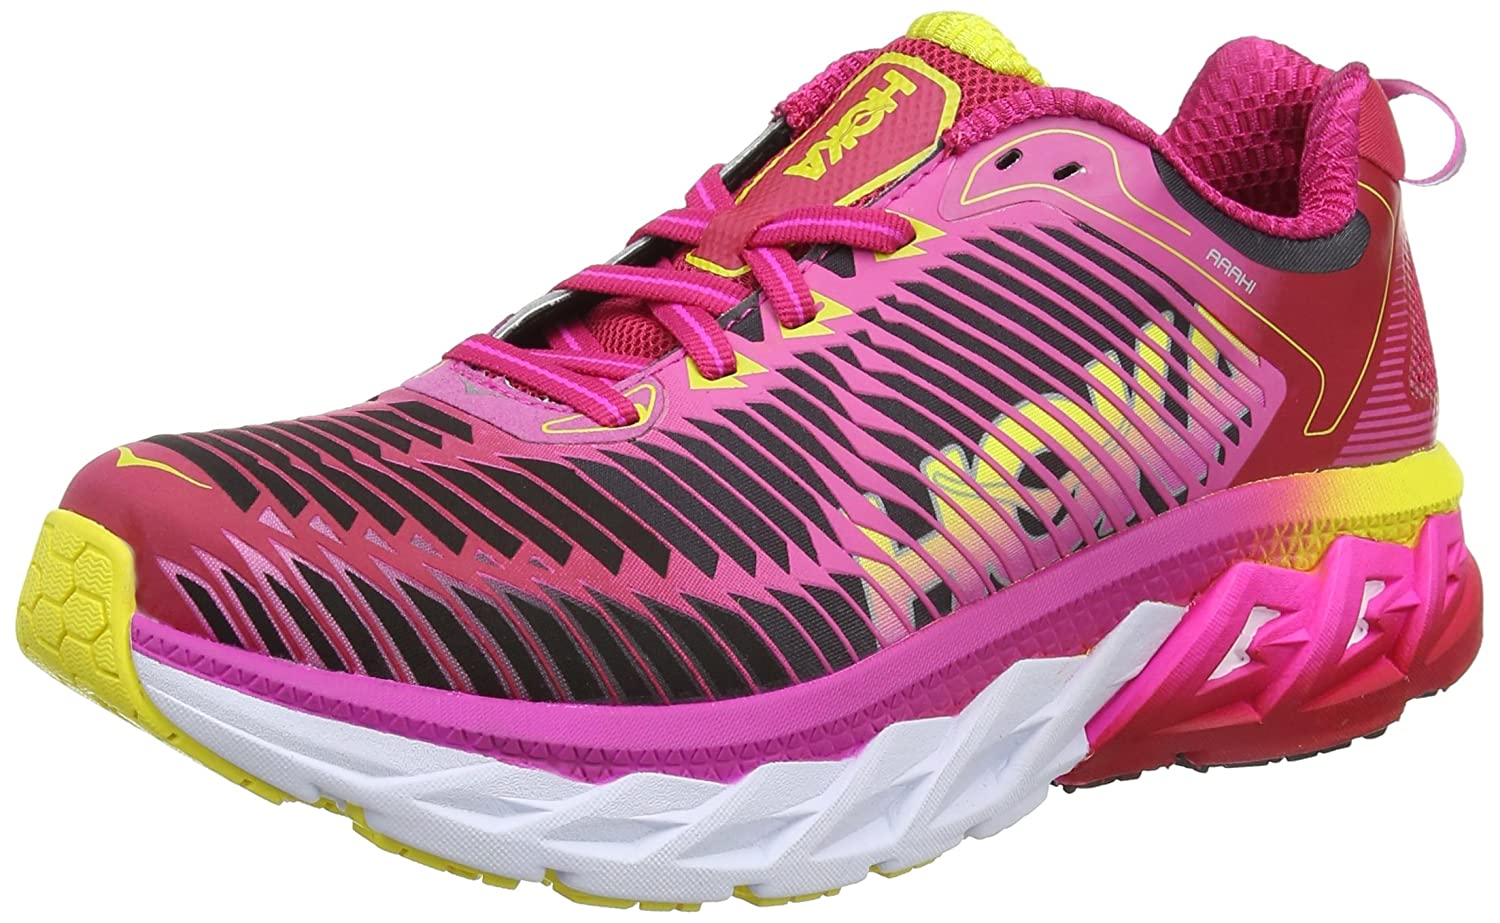 HOKA ONE ONE Mens Arahi Running Shoe B01HJEMNHW 7 B(M) US|Virtual Pink/Neon Fuchsia